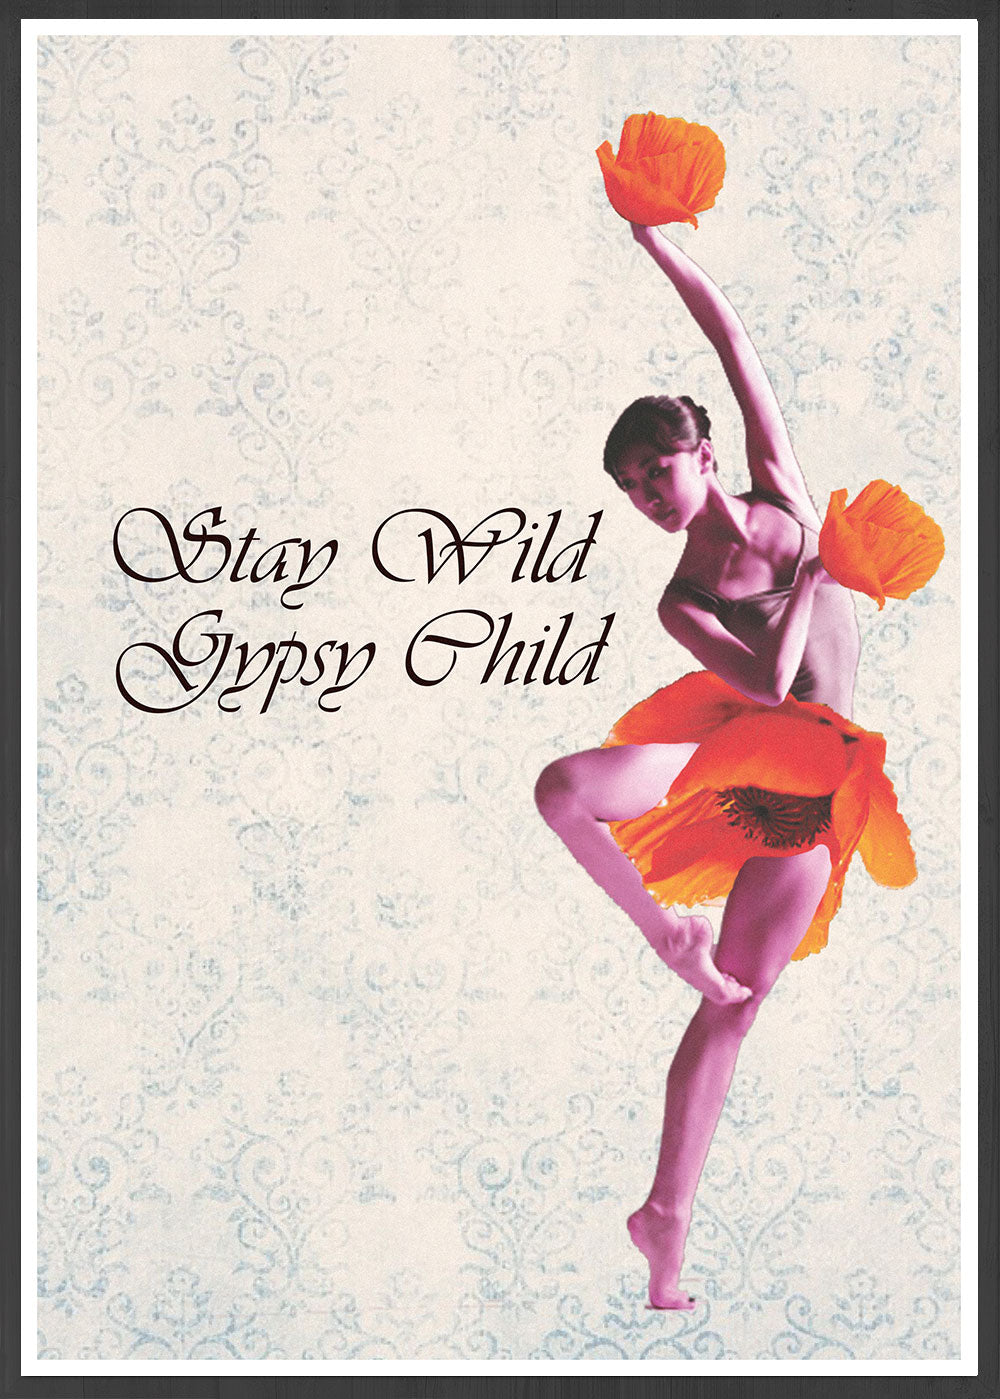 Stay Wild Gypsy Child Child Dancer Art Print in a frame